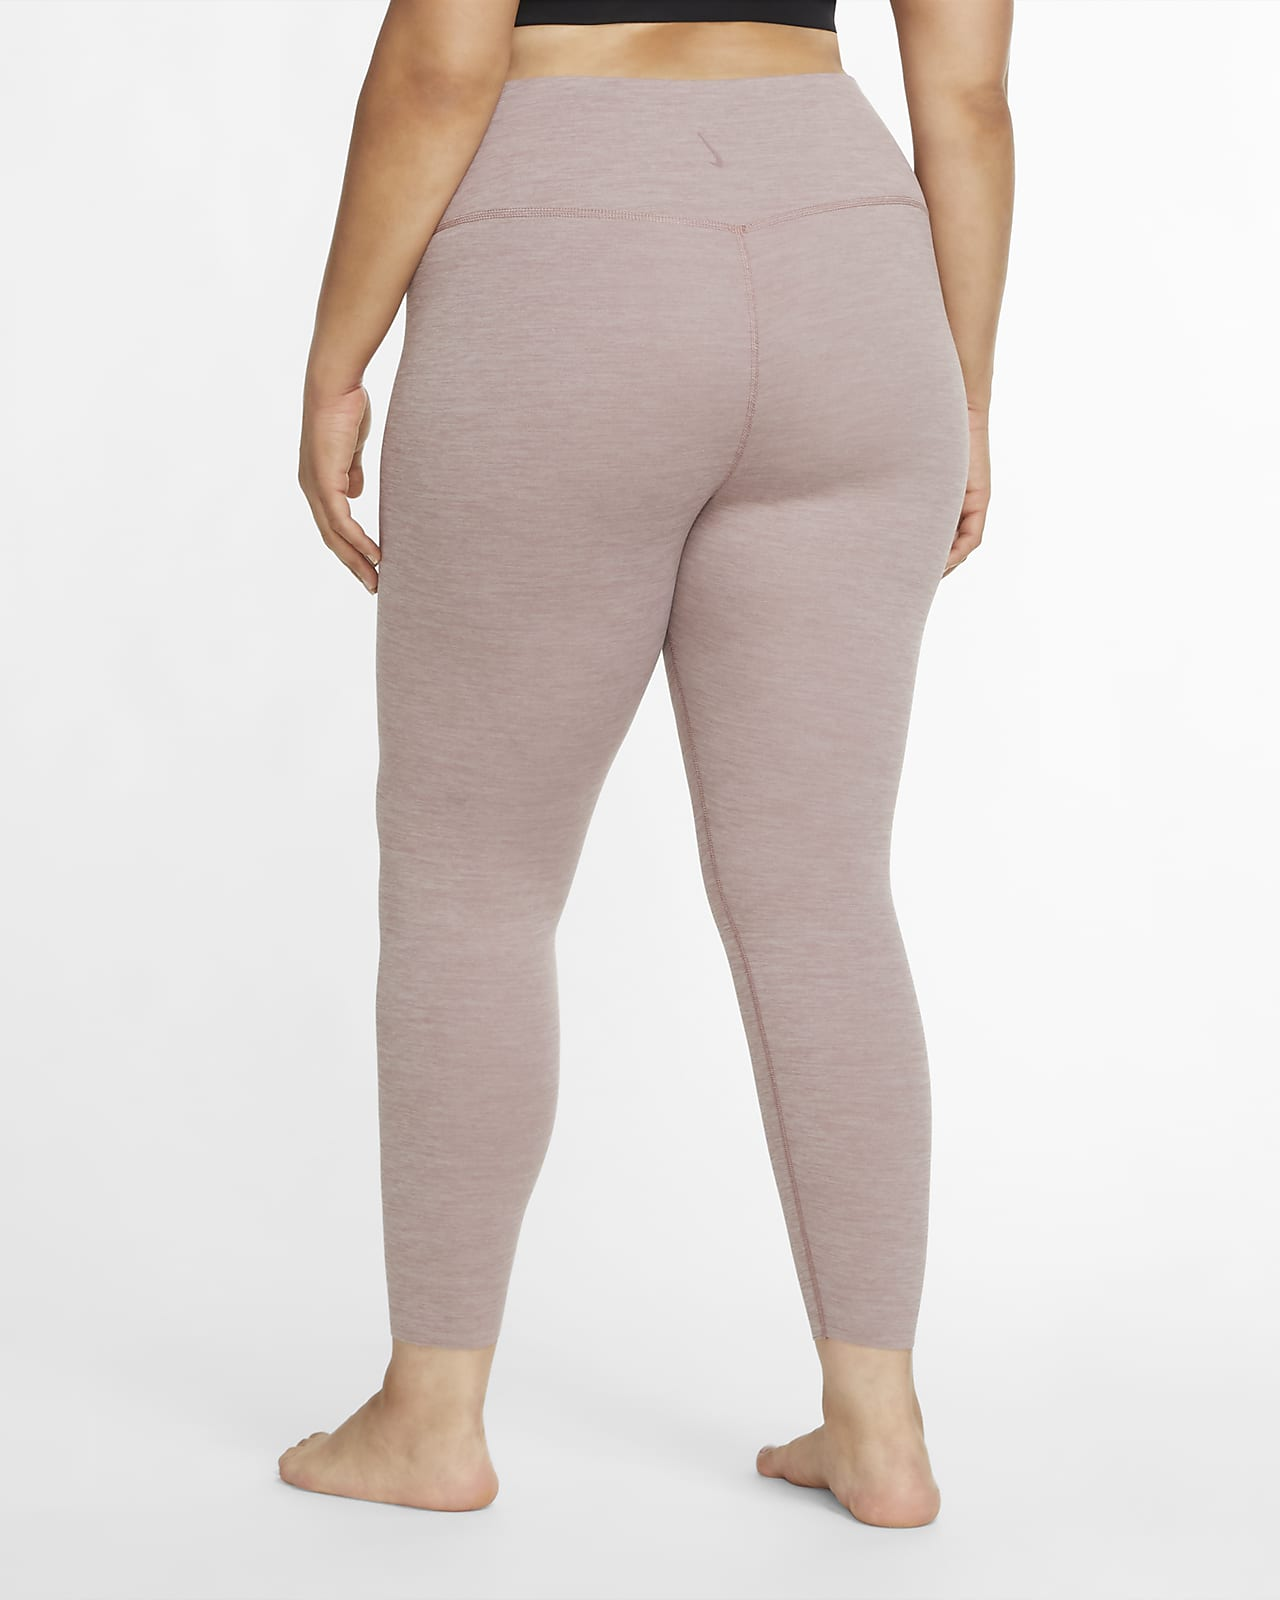 LADIES NEW WITH TAGS FLORAL YOGA GYM ANKLE LENGTH TIGHTS RRP $69.99